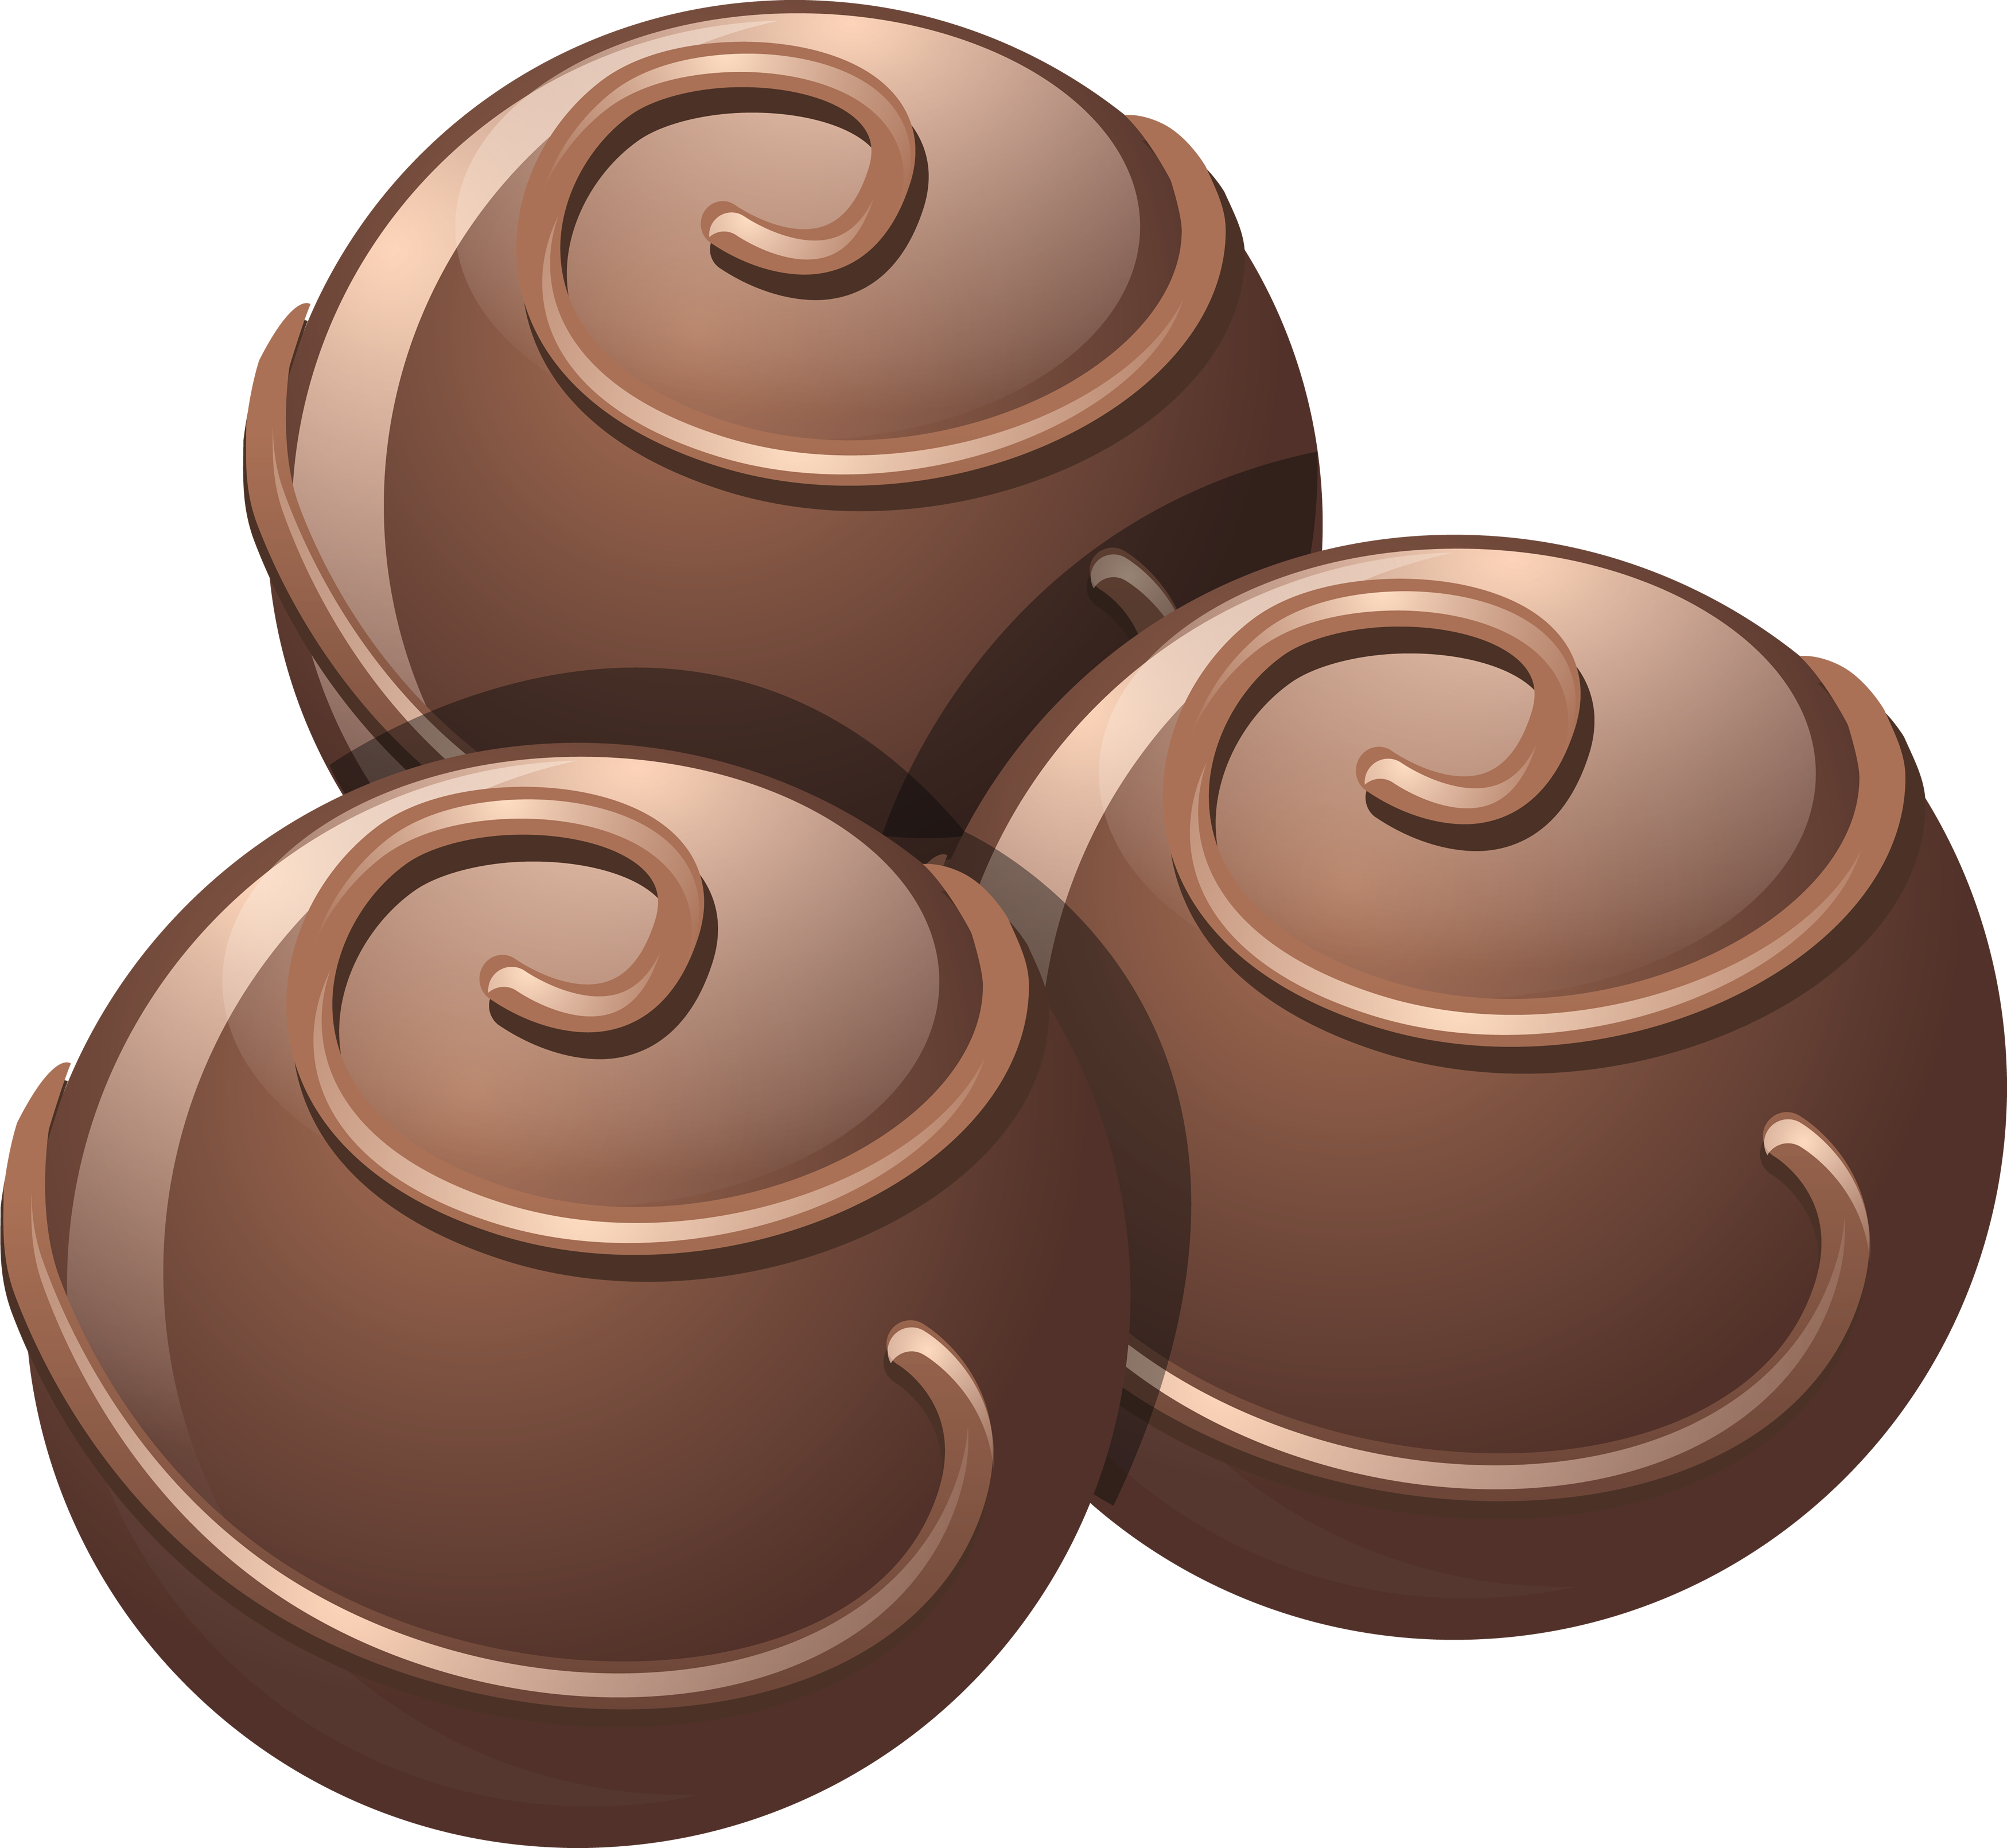 Png images free pictures. Hungry clipart chocolate